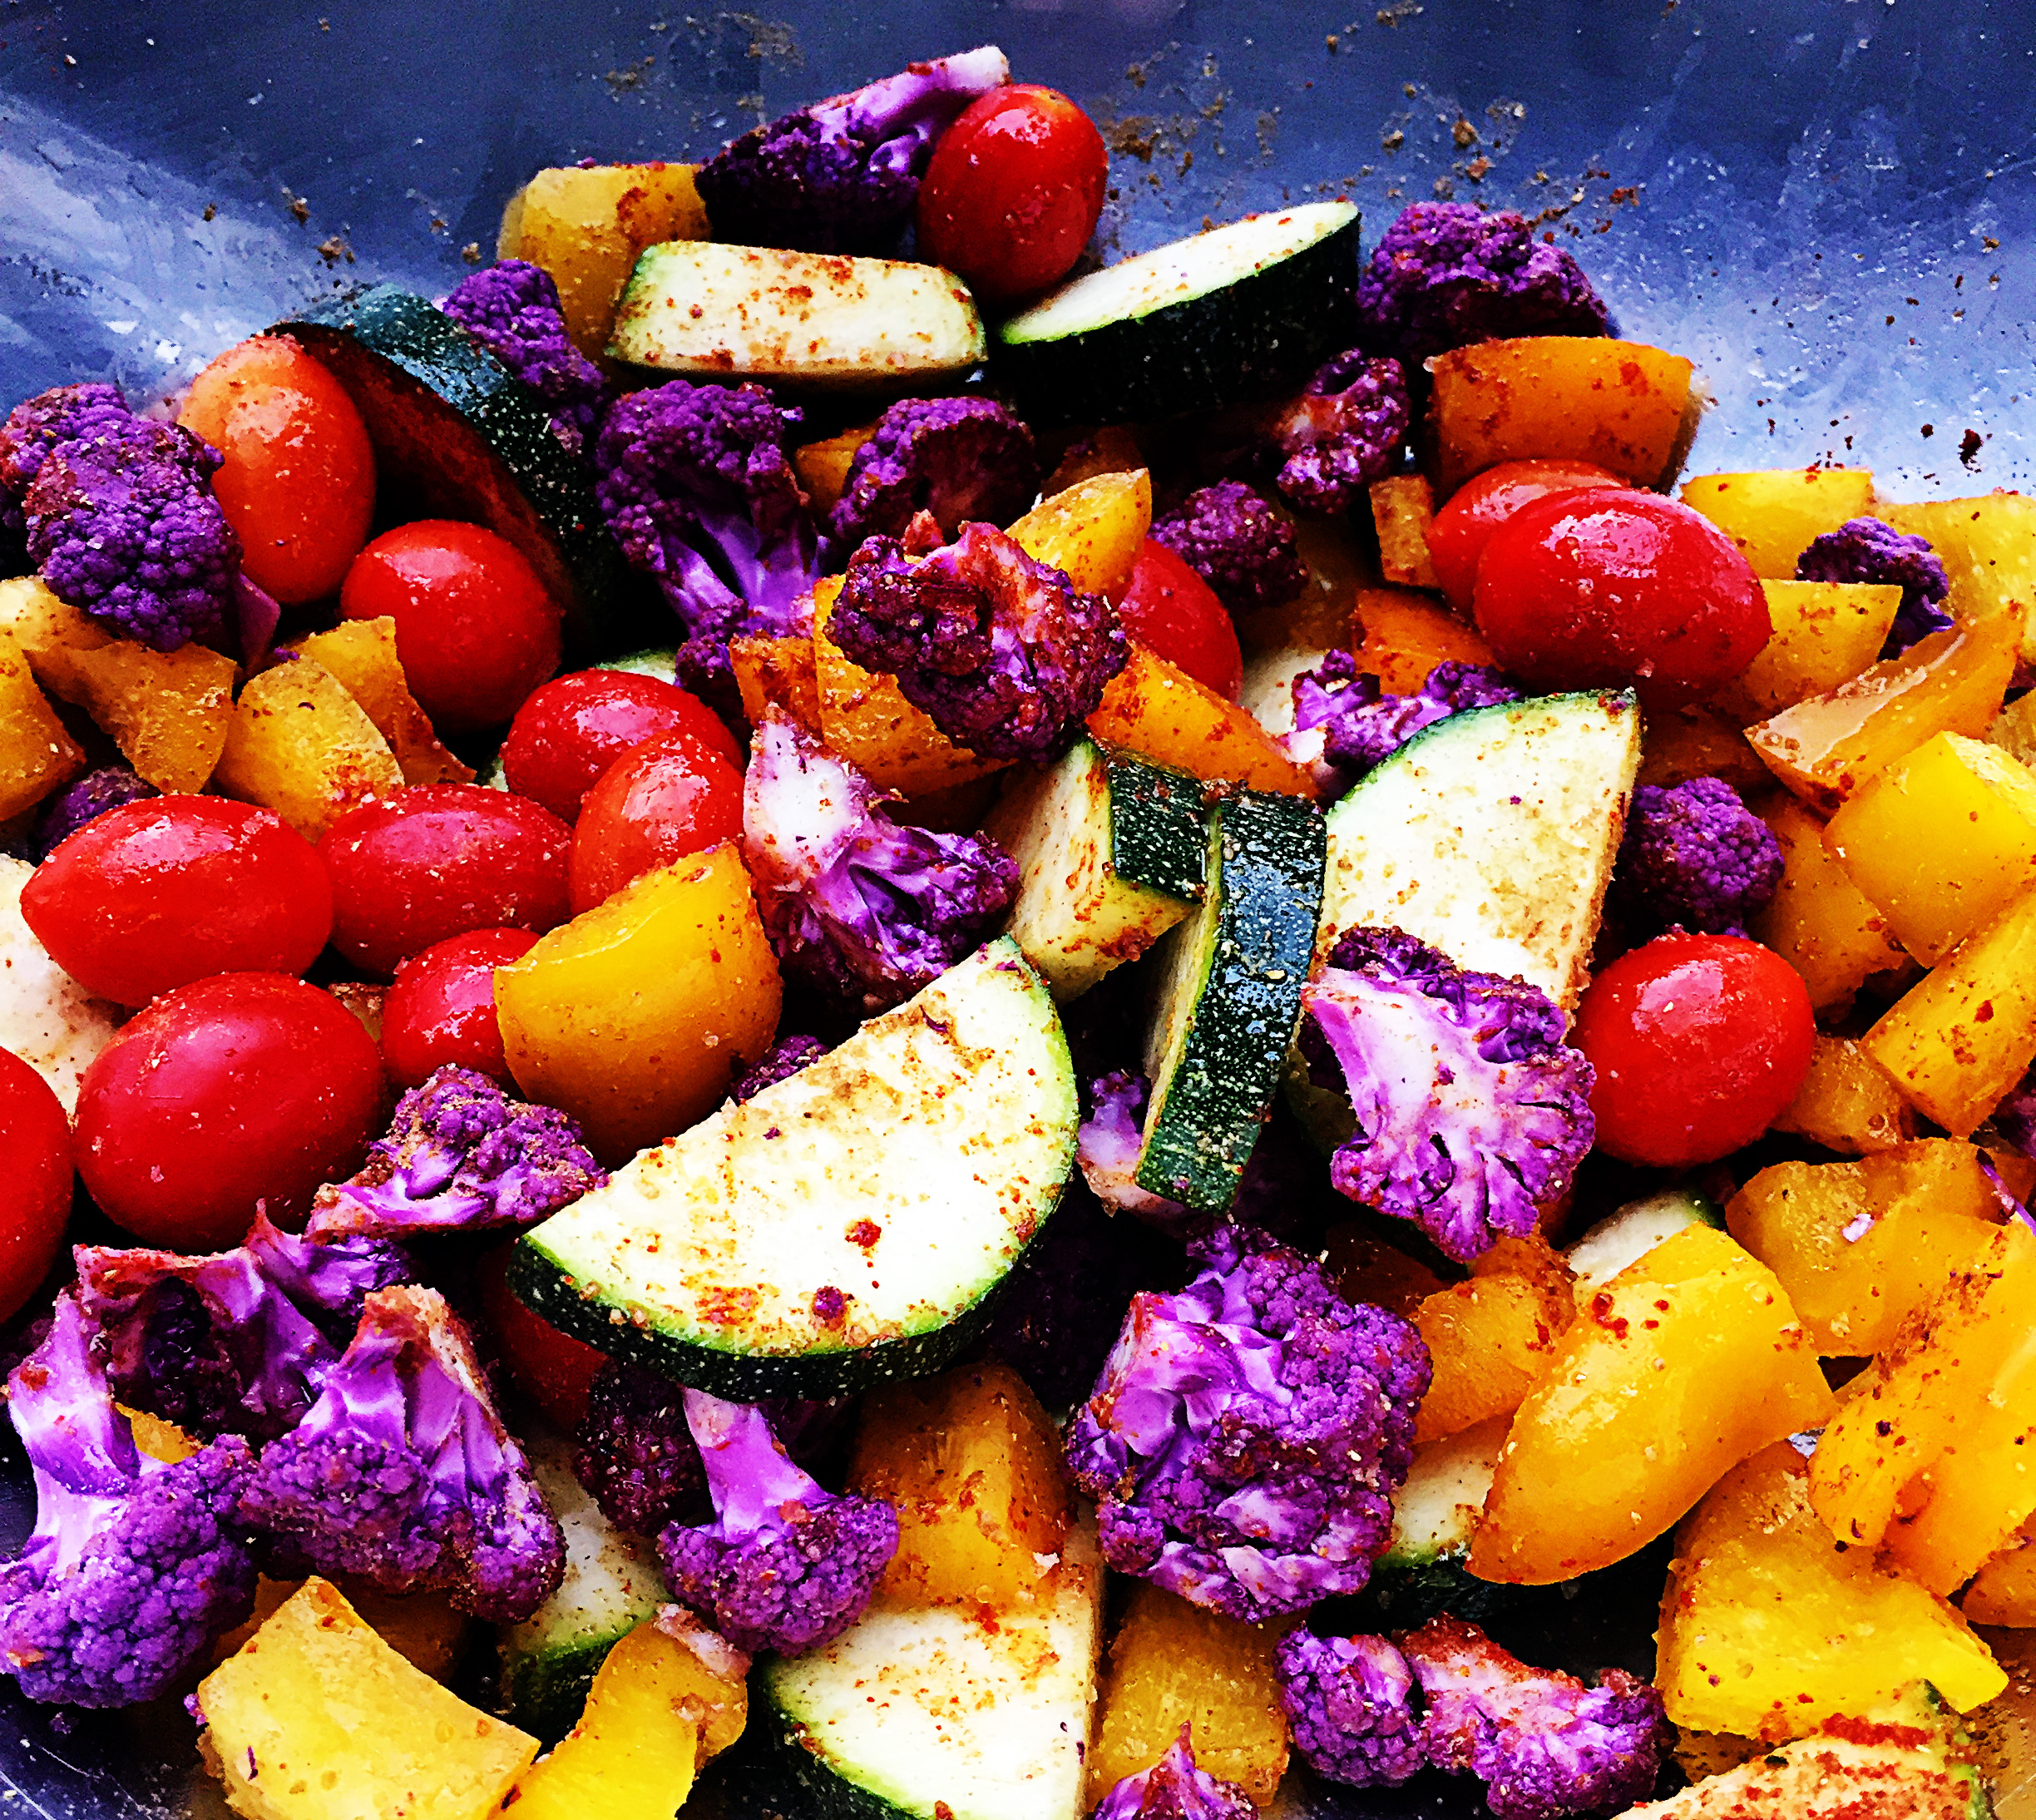 3. While your potatoes and tempeh are cooking, mix the rest of the fresh veggies with oil, coriander, sea salt, cumin, paprika, and chili powder. Toss a few times to coat all the veggies. Set aside.